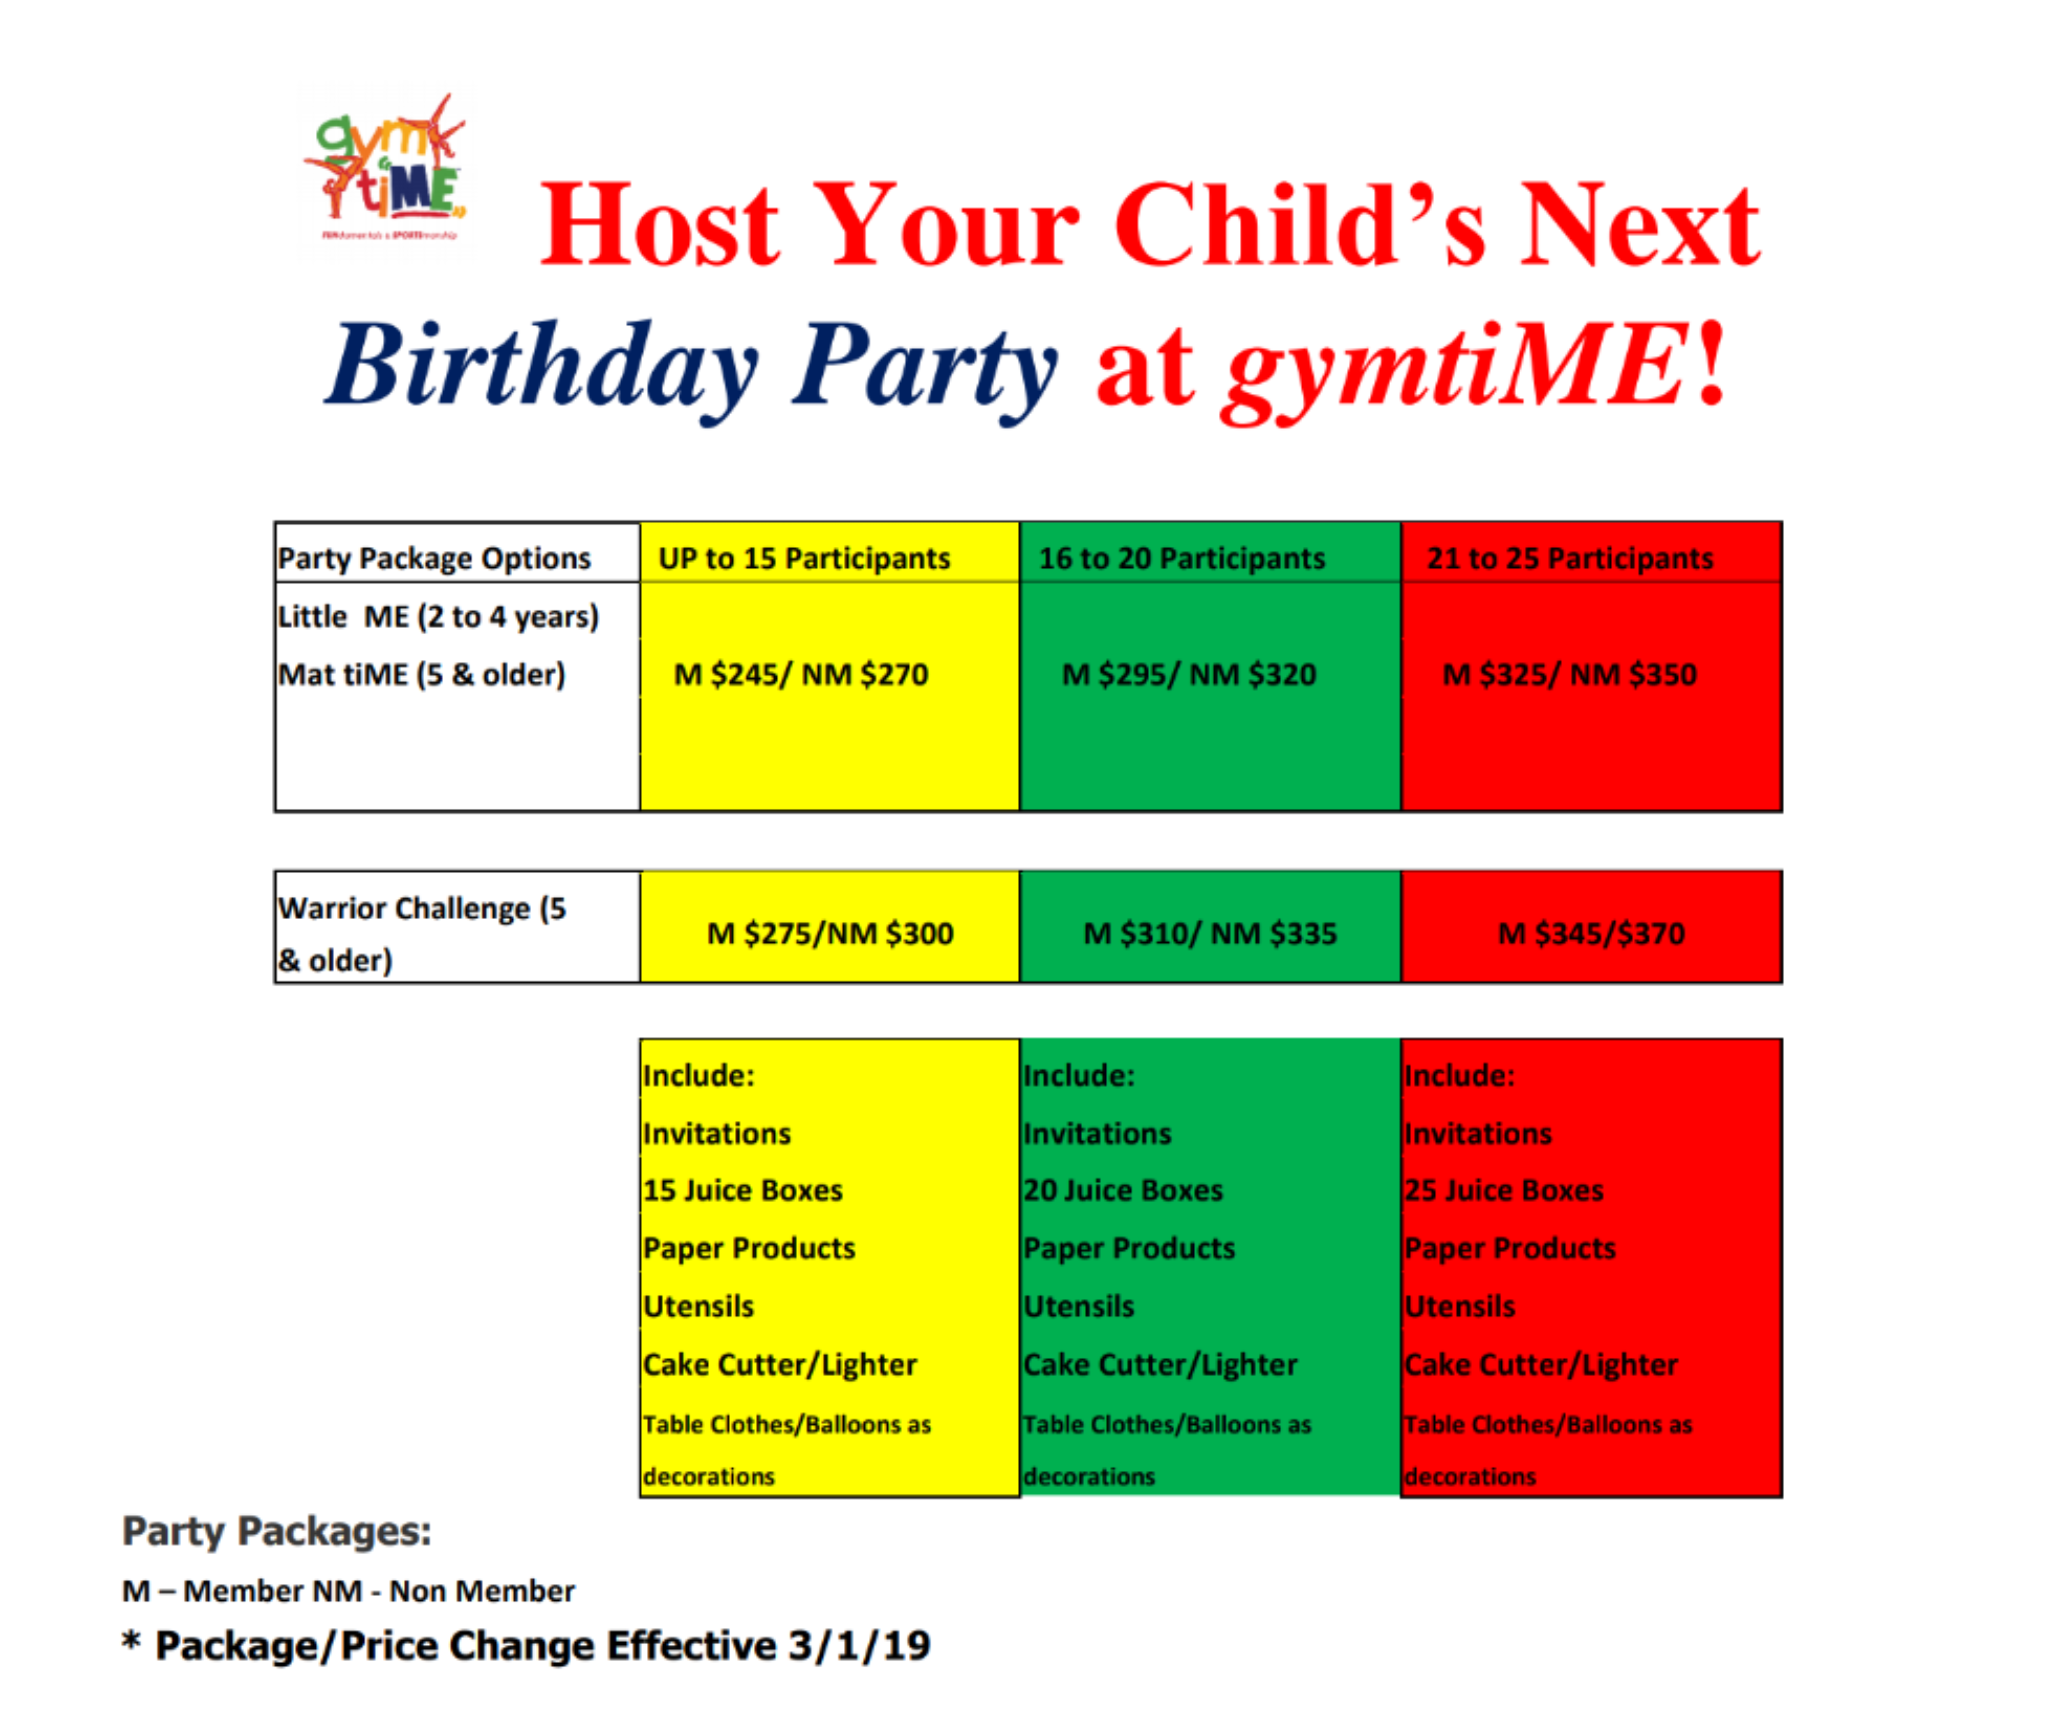 Our Little ME Birthday Party Is Designed For Children Ages 2 To 4 Years Old Two Of Very Qualified Lead Instructors Will You Your Child And